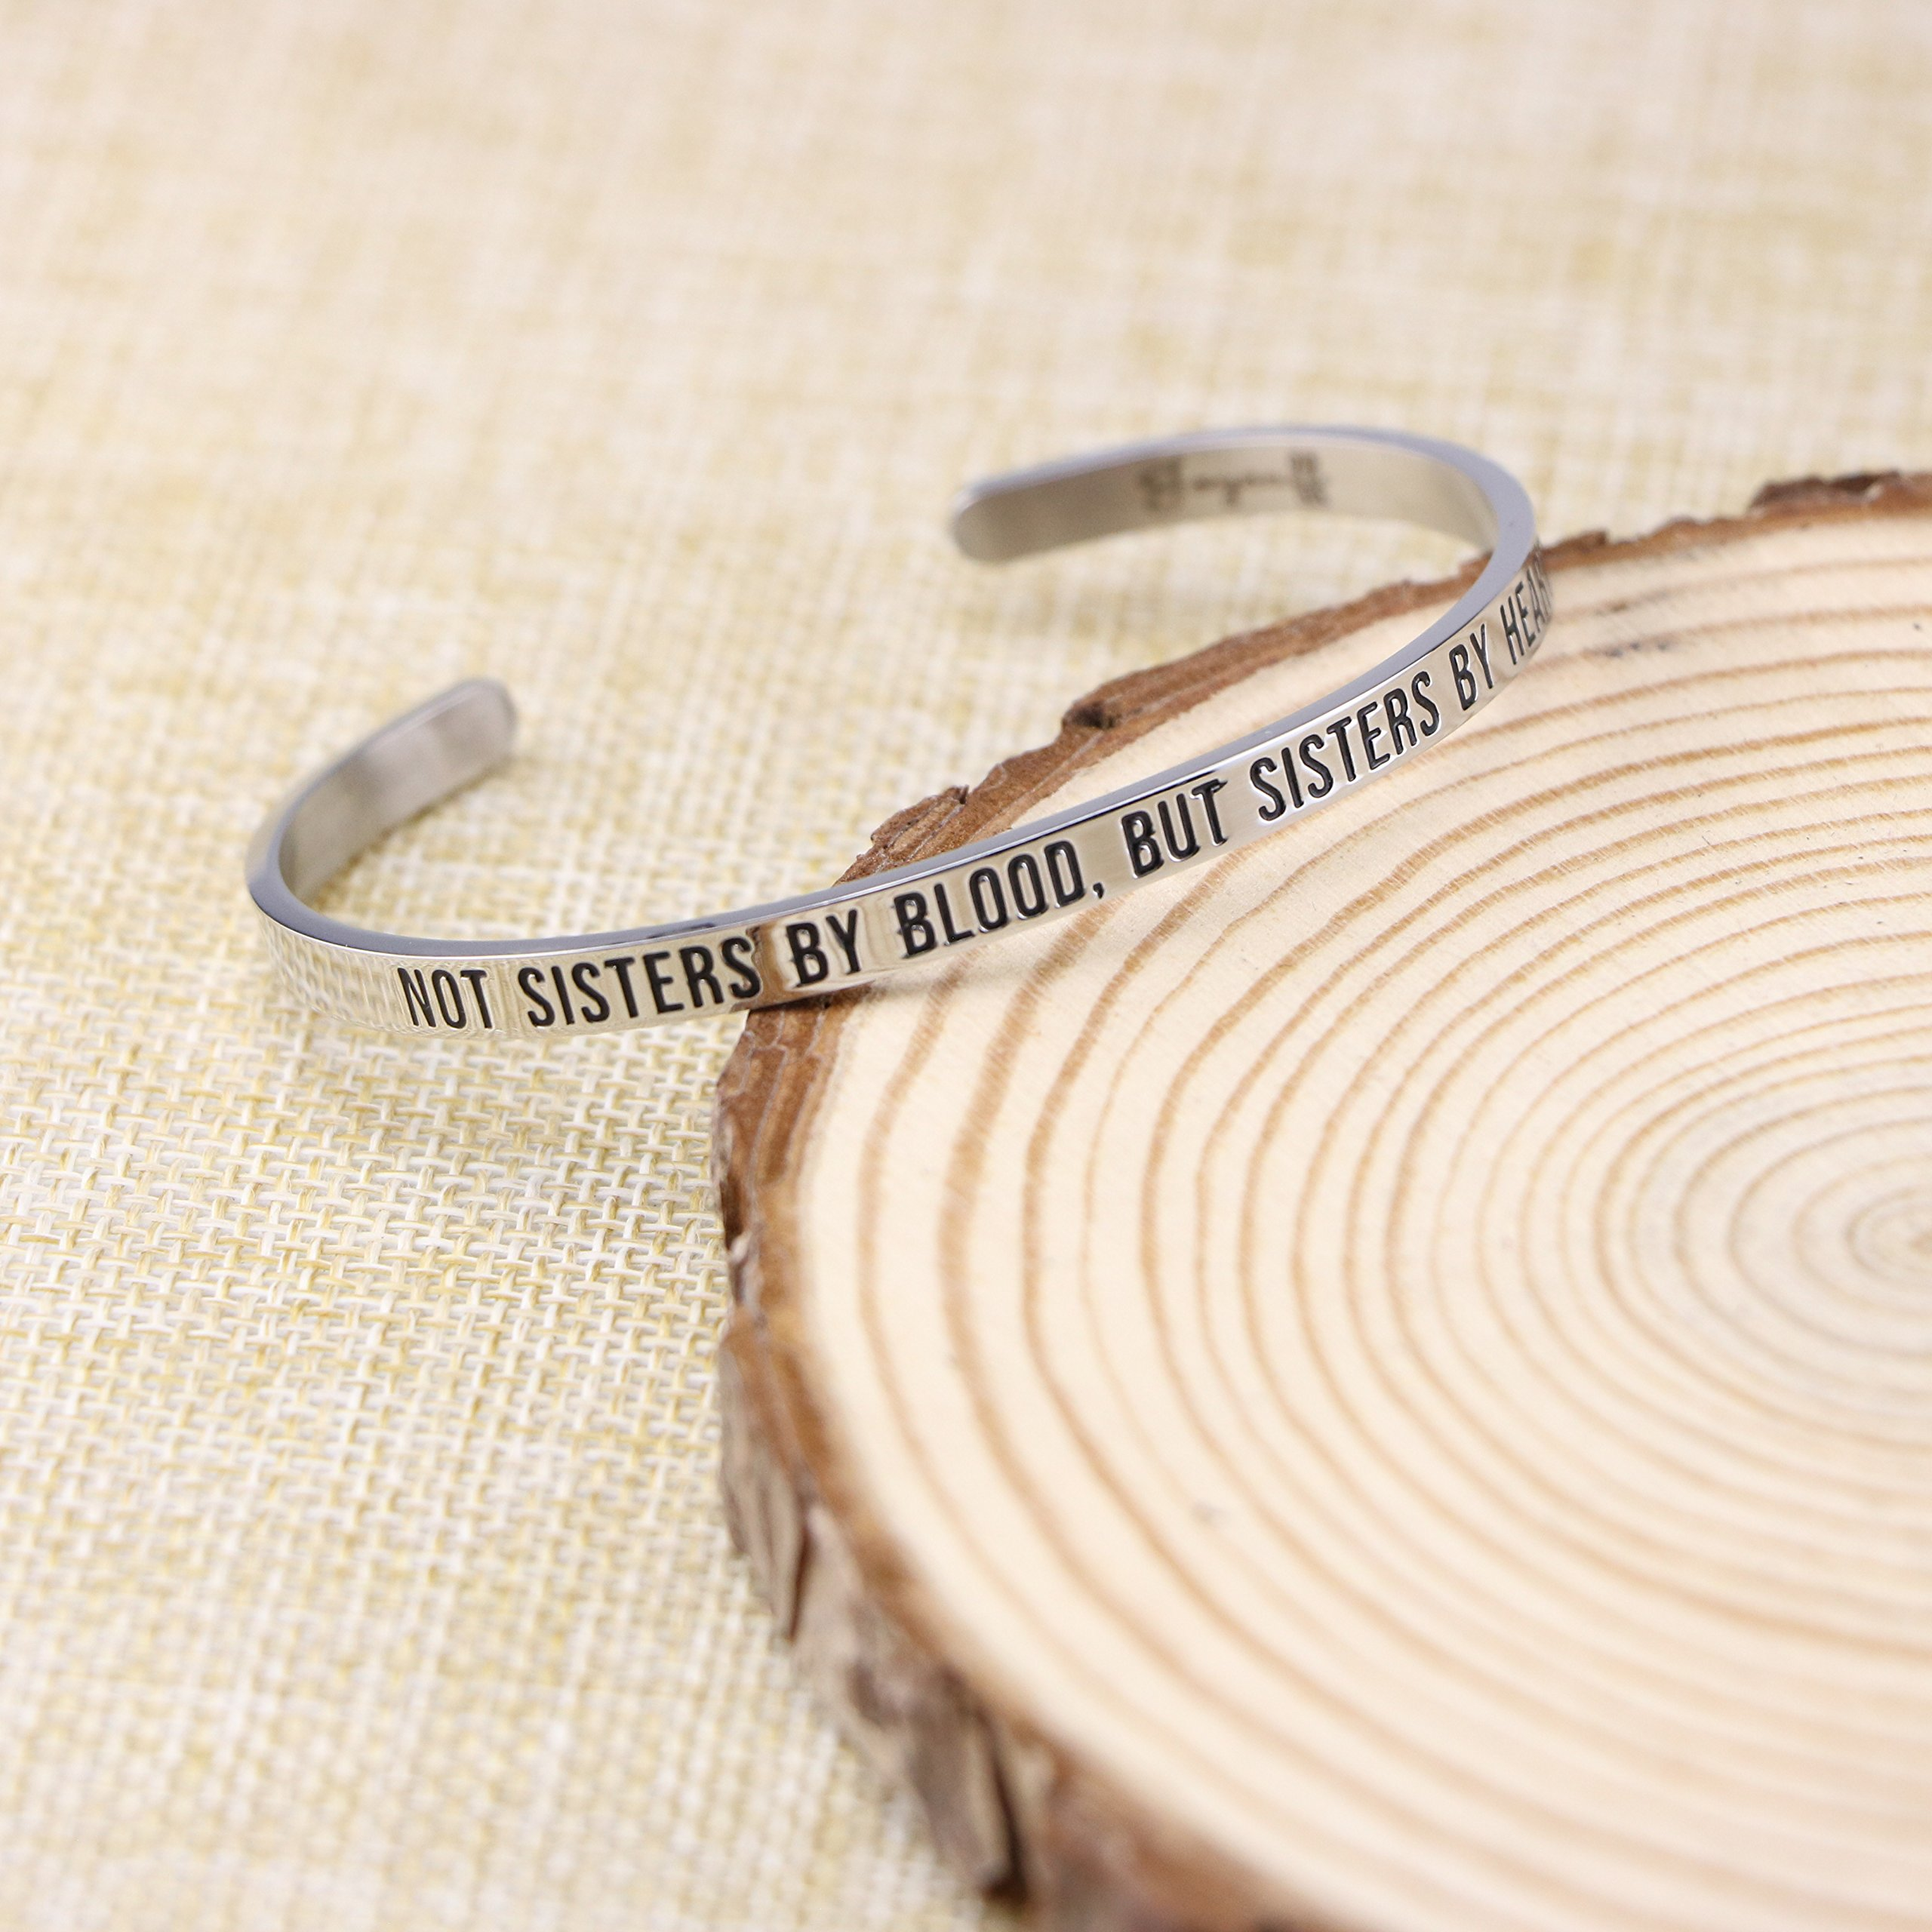 Joycuff Best Friend Bracelet Cuff Engravable Mantra Bangle BFF Jewelry Gifts for Her Not sisters by blood, but sisters by heart by Joycuff (Image #2)